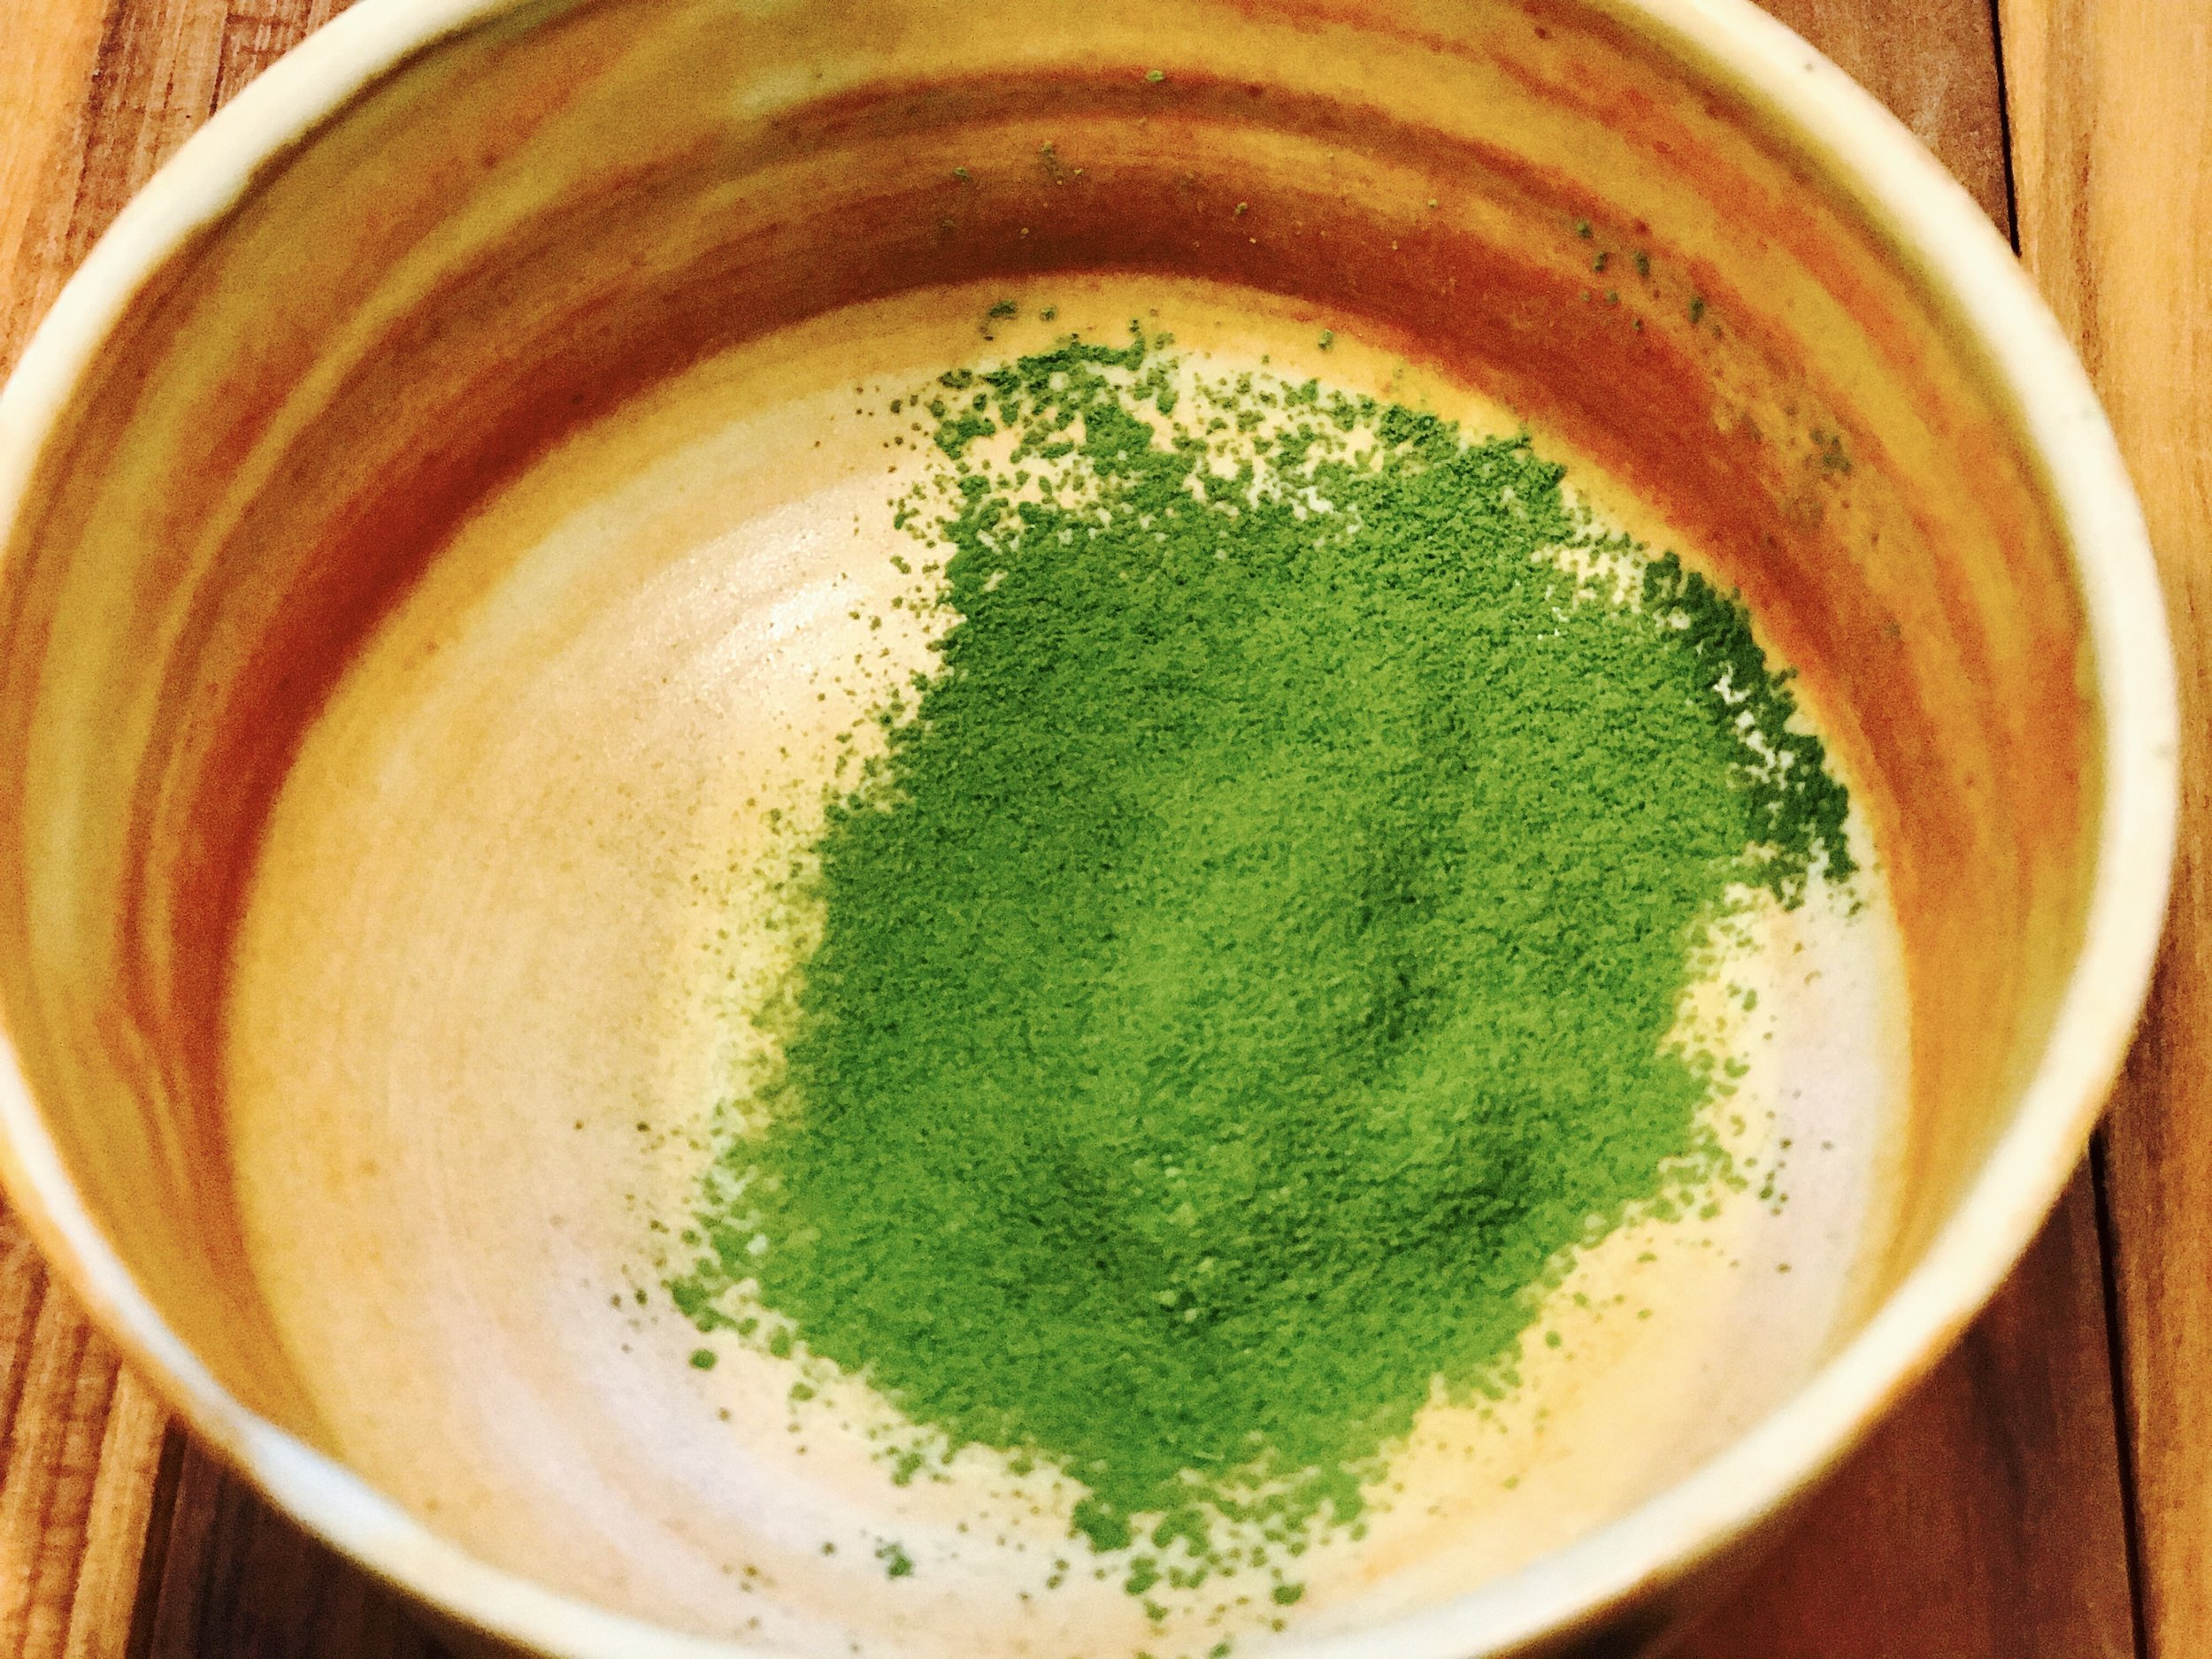 Matcha pressed through a sieve